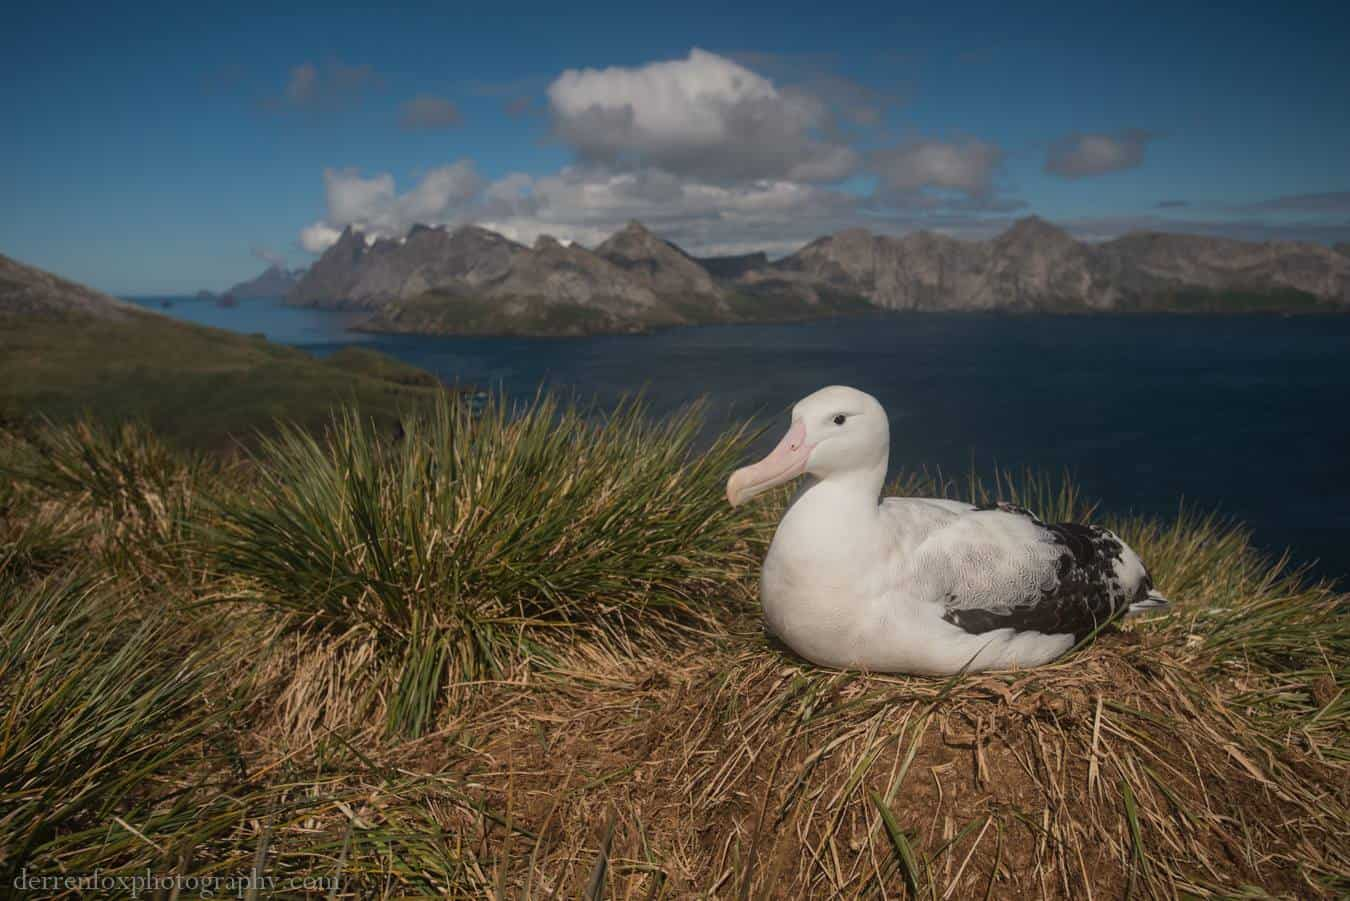 An incubating wandering albatross, South Georgia Copyright: Derren Fox